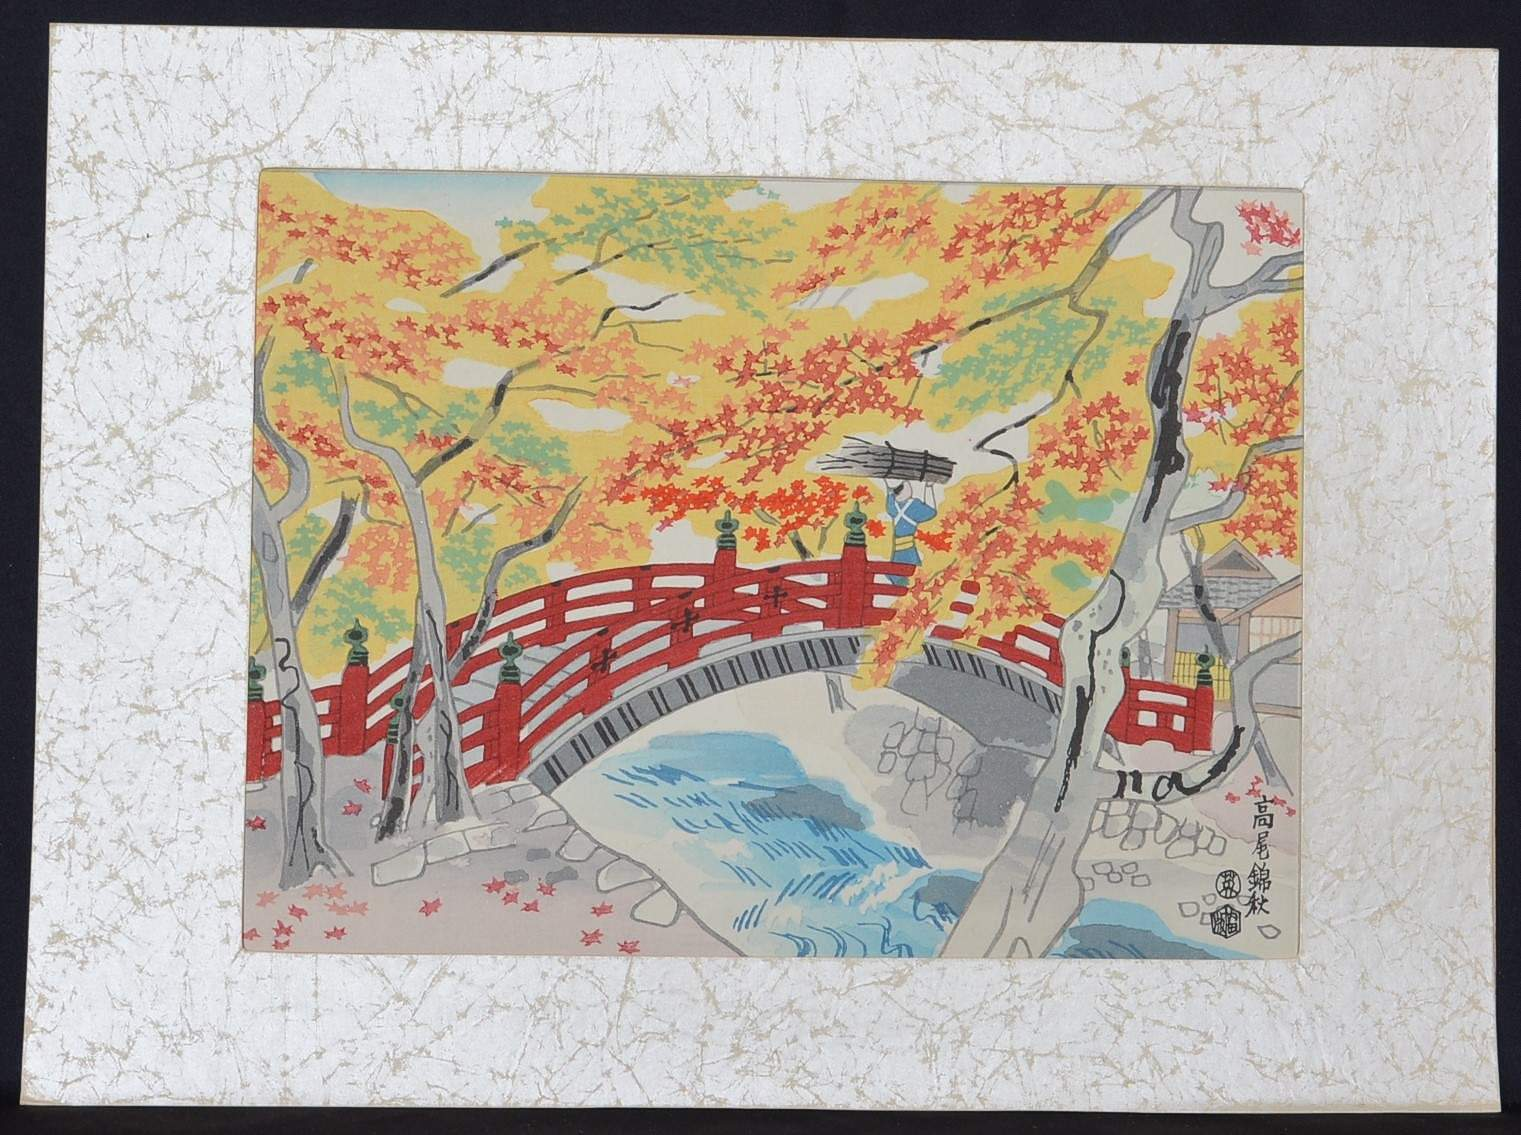 5. THE MAPLE LEAVES OF TAKAO IN KYOTO